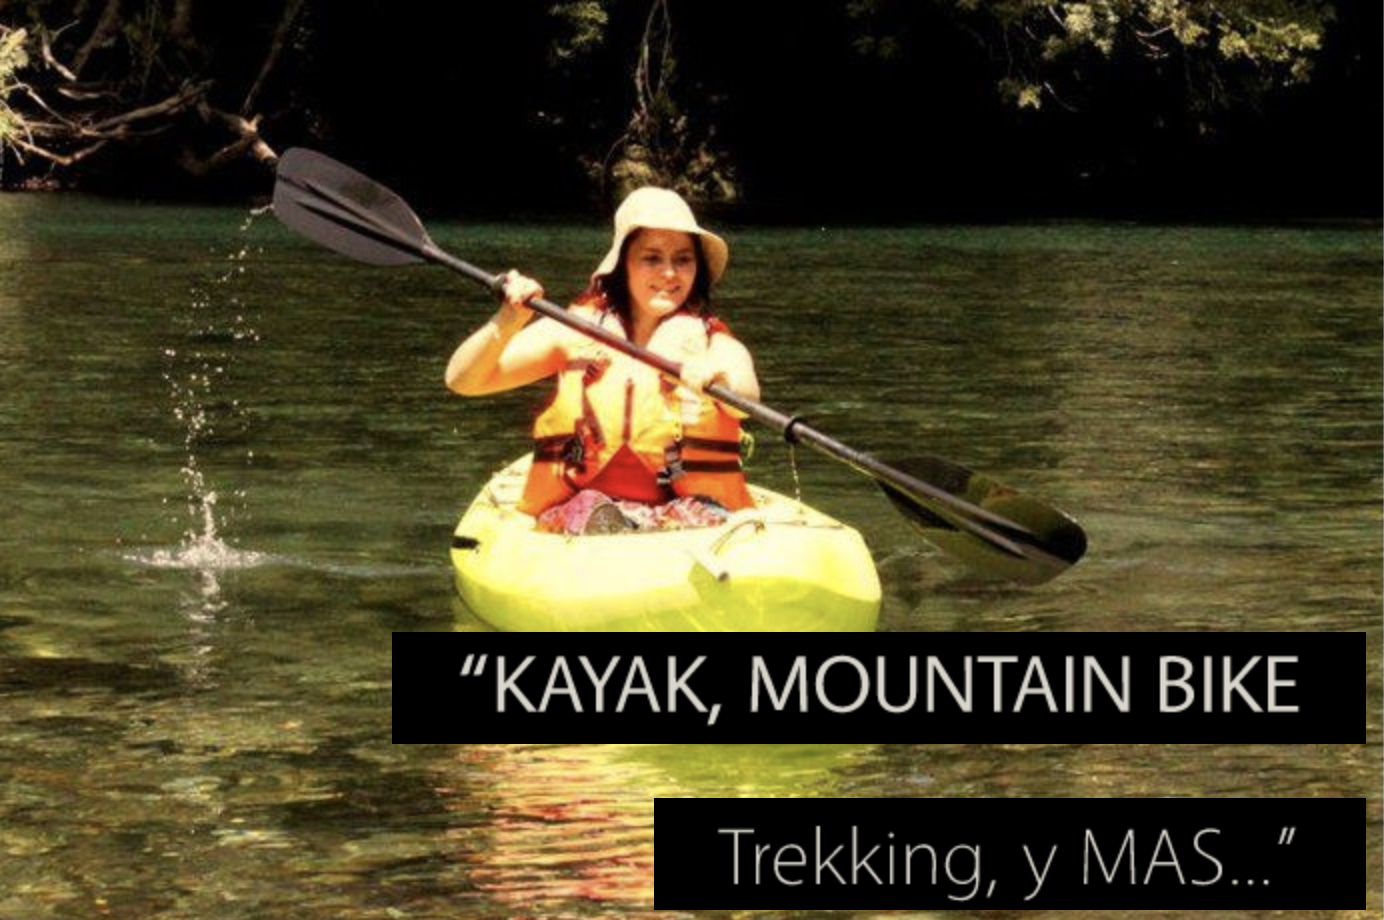 Kayaking, Mountain Biking, Trekking, and MORE